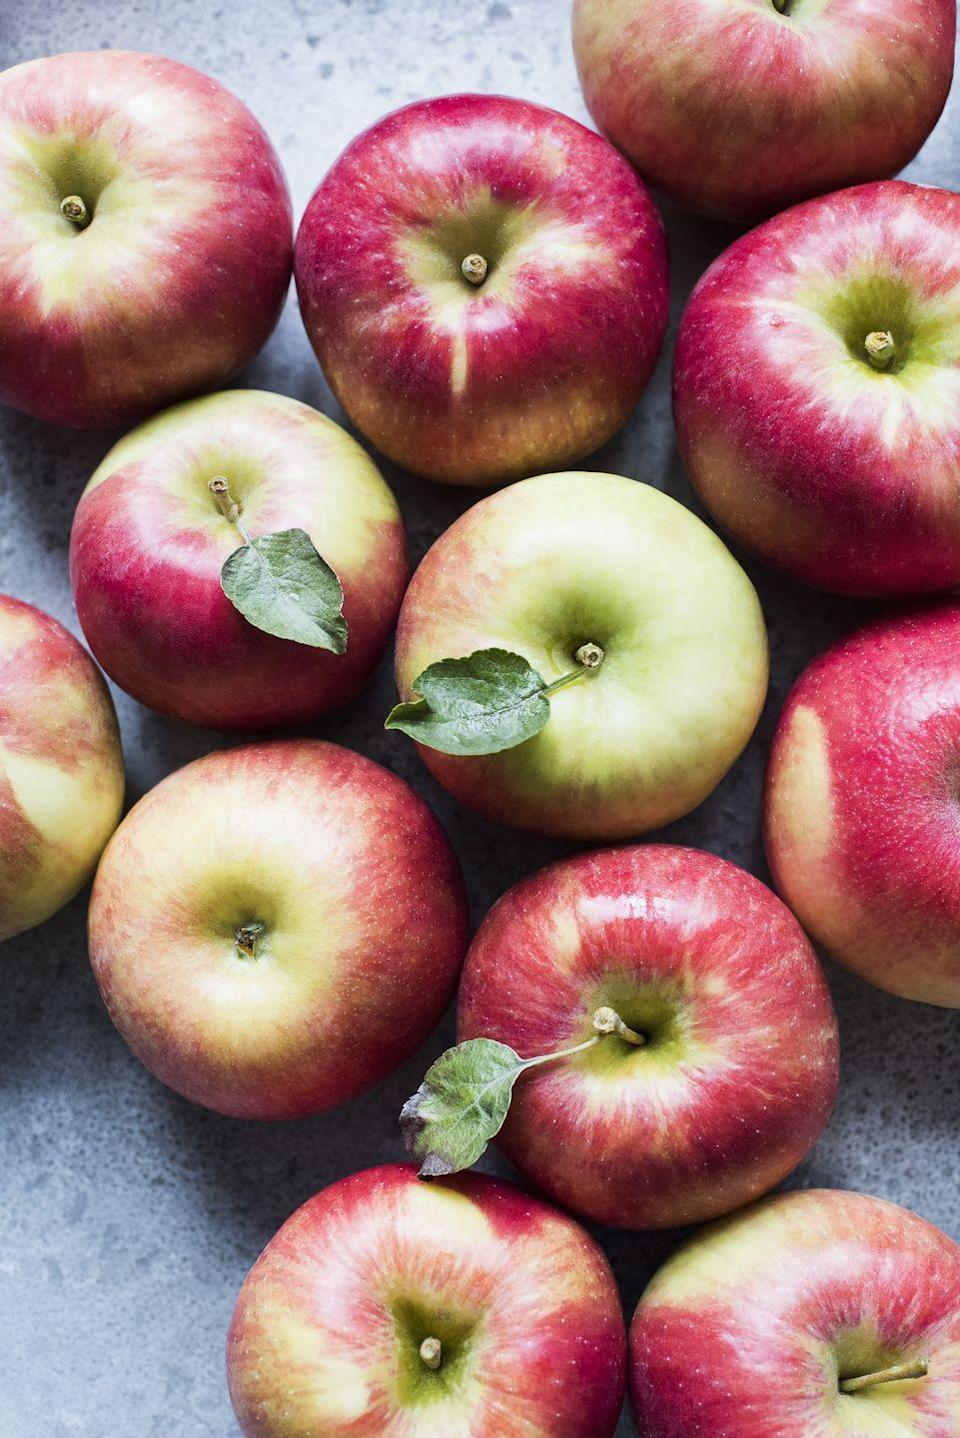 "<p>Science agrees: An apple a day <a href=""https://www.goodhousekeeping.com/health/diet-nutrition/a19500501/apple-nutrition/"" rel=""nofollow noopener"" target=""_blank"" data-ylk=""slk:may in fact keep your cardiologist away"" class=""link rapid-noclick-resp"">may in fact keep your cardiologist away</a>. Evidence has shown that frequent apple consumption may reduce total cholesterol. That's thanks to the phenolic compounds found in apple skins — a.k.a. the antioxidant compounds that promote healthy cellular function and proper blood flow.</p><p><strong>RELATED: </strong><a href=""https://www.goodhousekeeping.com/food-recipes/g3658/best-apple-recipes/"" rel=""nofollow noopener"" target=""_blank"" data-ylk=""slk:The 70 Greatest Things You Can Do With Apples"" class=""link rapid-noclick-resp"">The 70 Greatest Things You Can Do With Apples</a></p>"